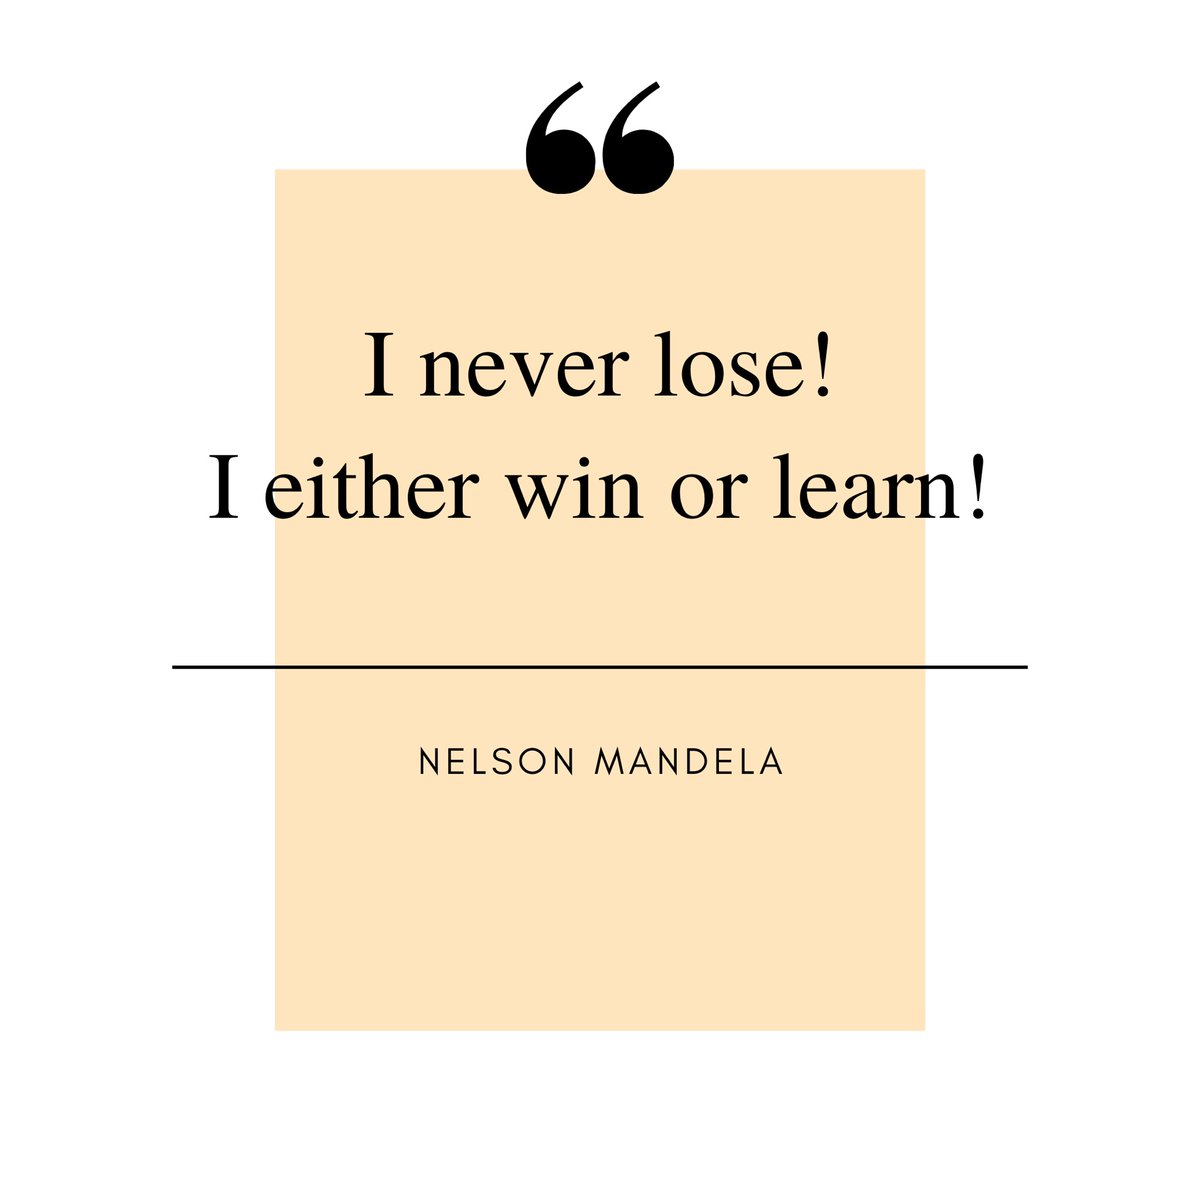 Spending 27 years in prison didn't stop Mandela to fight for what he believed and what he lived for..He is still a great leader in millions' hearts and inspires generations with his quotes and life story✨ . . . . #dowhatyoubelieve #learnings #inspiringfriday #events #lifelong https://t.co/7LpFgU39lB